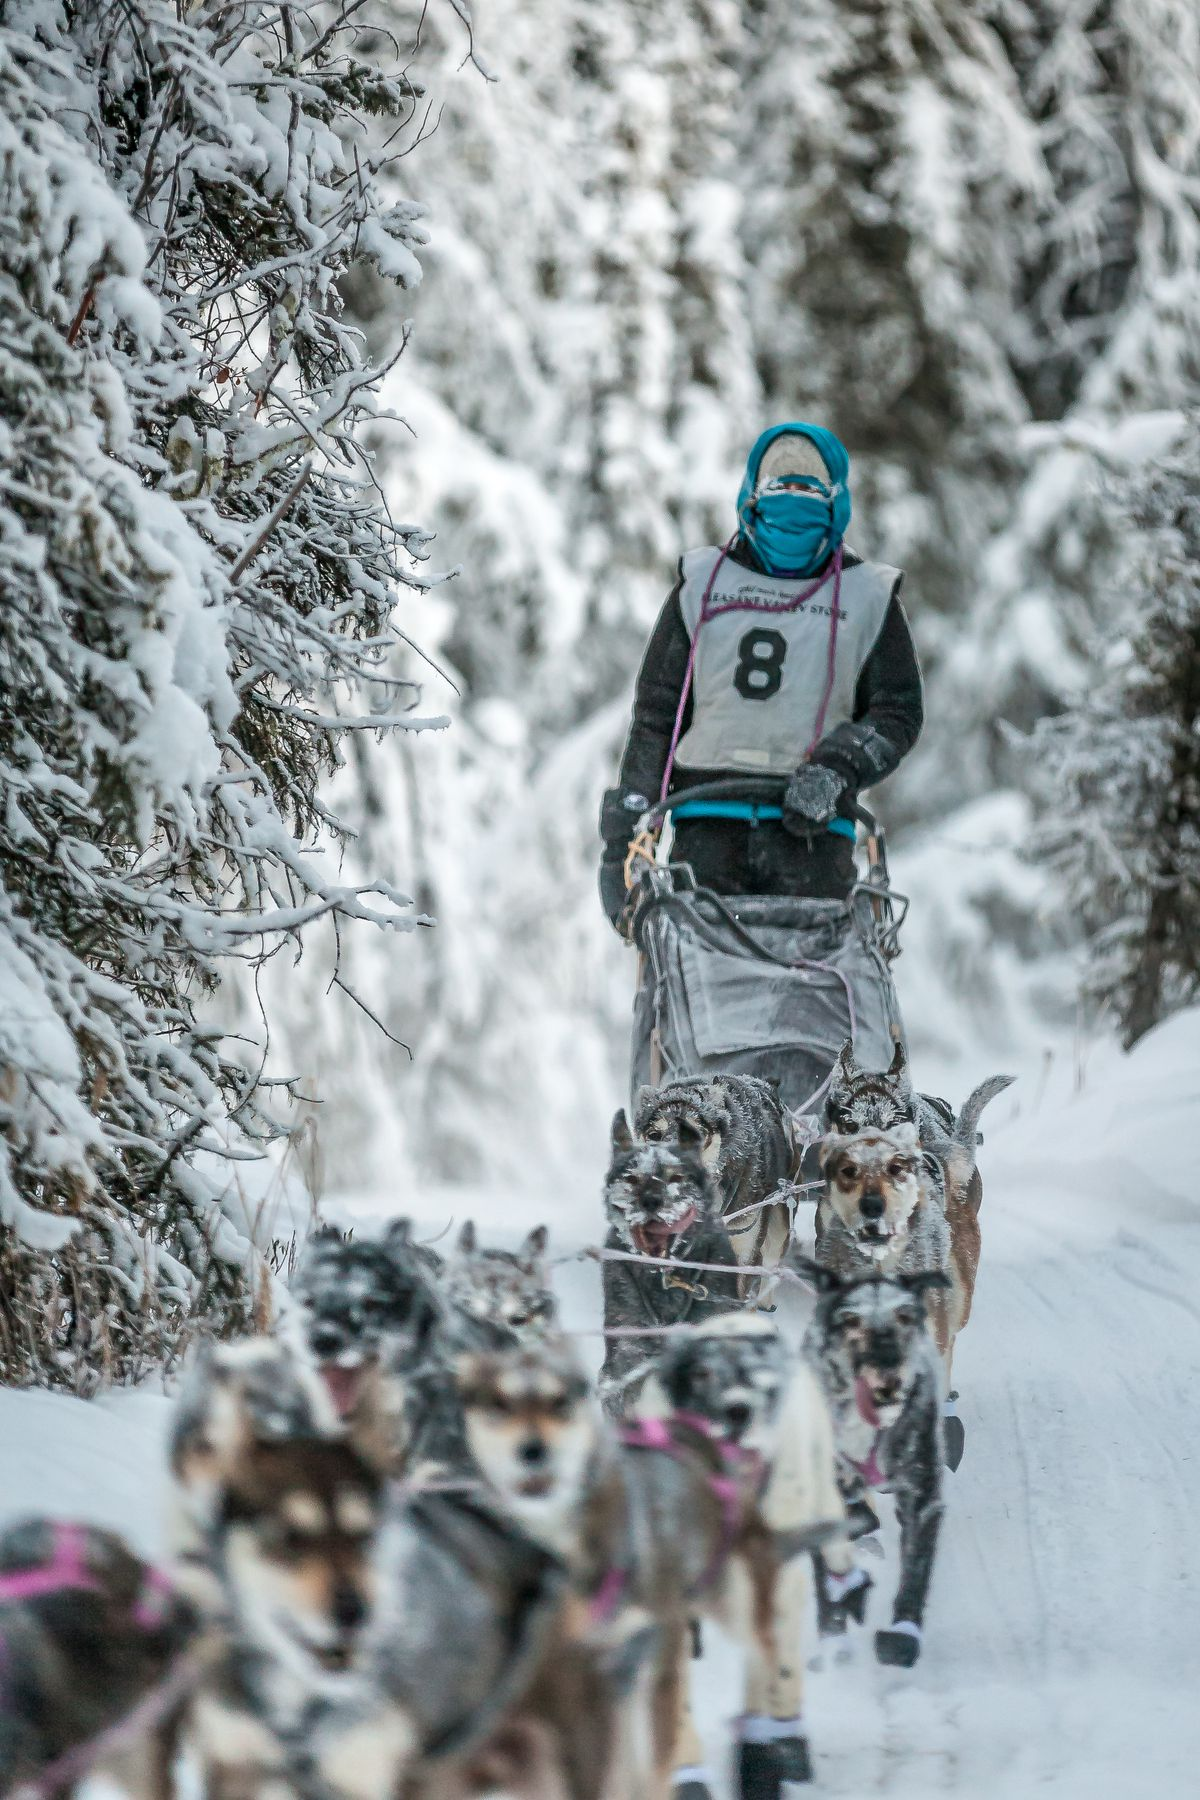 Shaynee Traska of Two Rivers, shown here competing in the Solstice 100, will be a rookie in the 2018 Iditarod. (Photo by Scott Chesney)